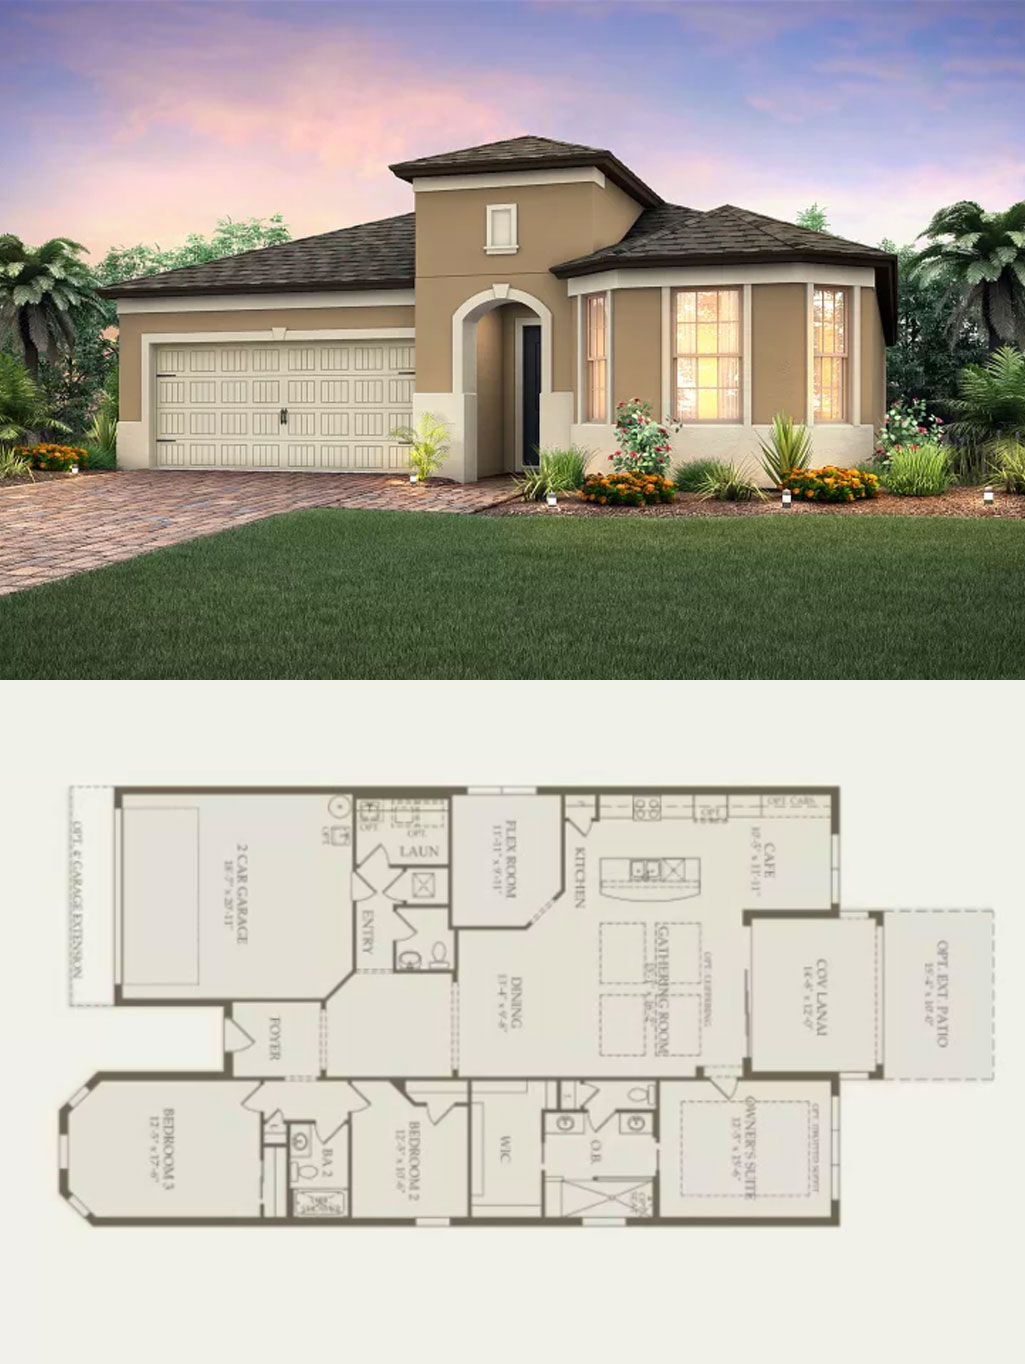 Epperson Ranch Floor Plans Pulte Homes in Epperson Wesley Chapel FL – Pulte Homes Ranch Floor Plans